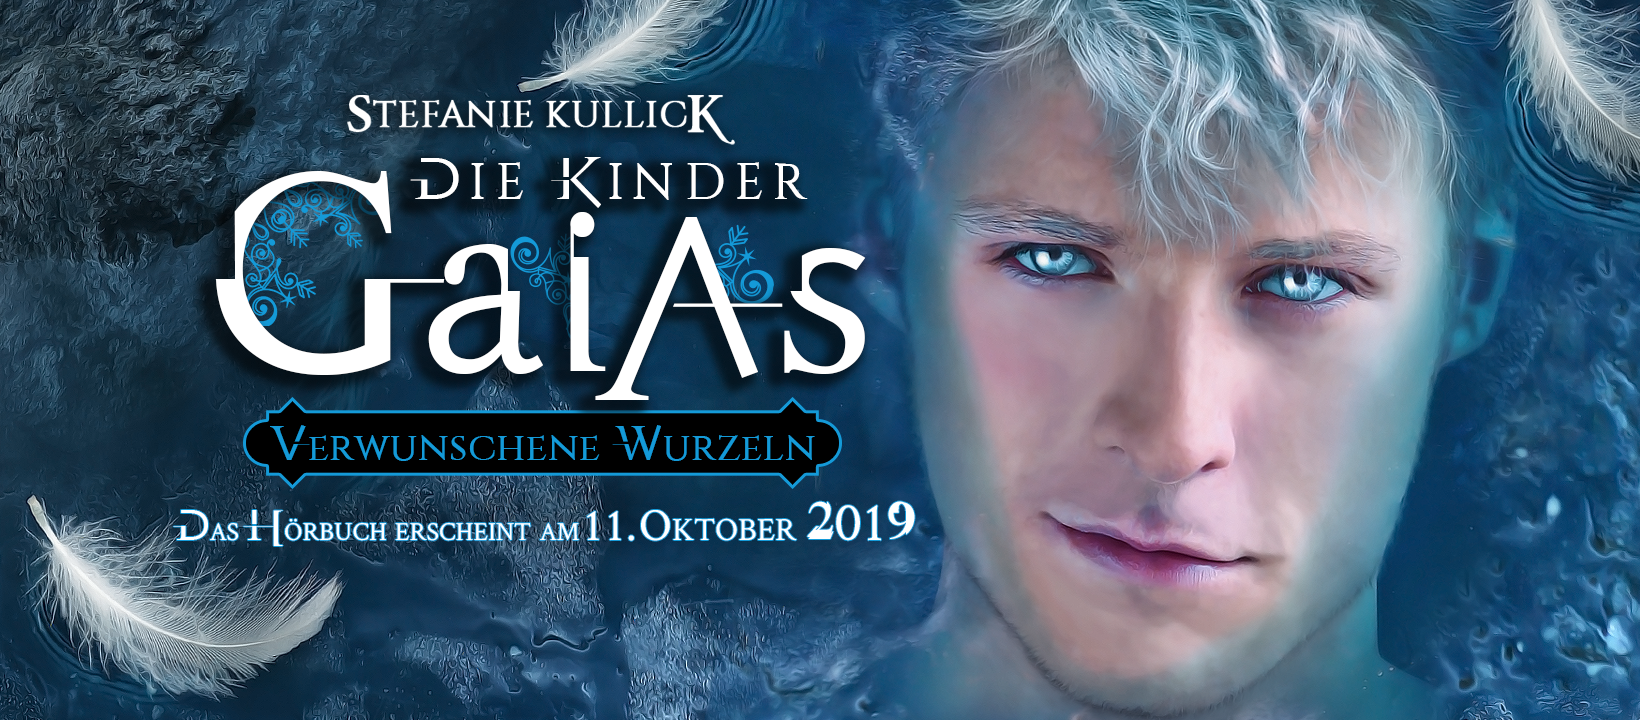 Die-Kinder-Gaias-book-two-FB-HEADER-SUB-02